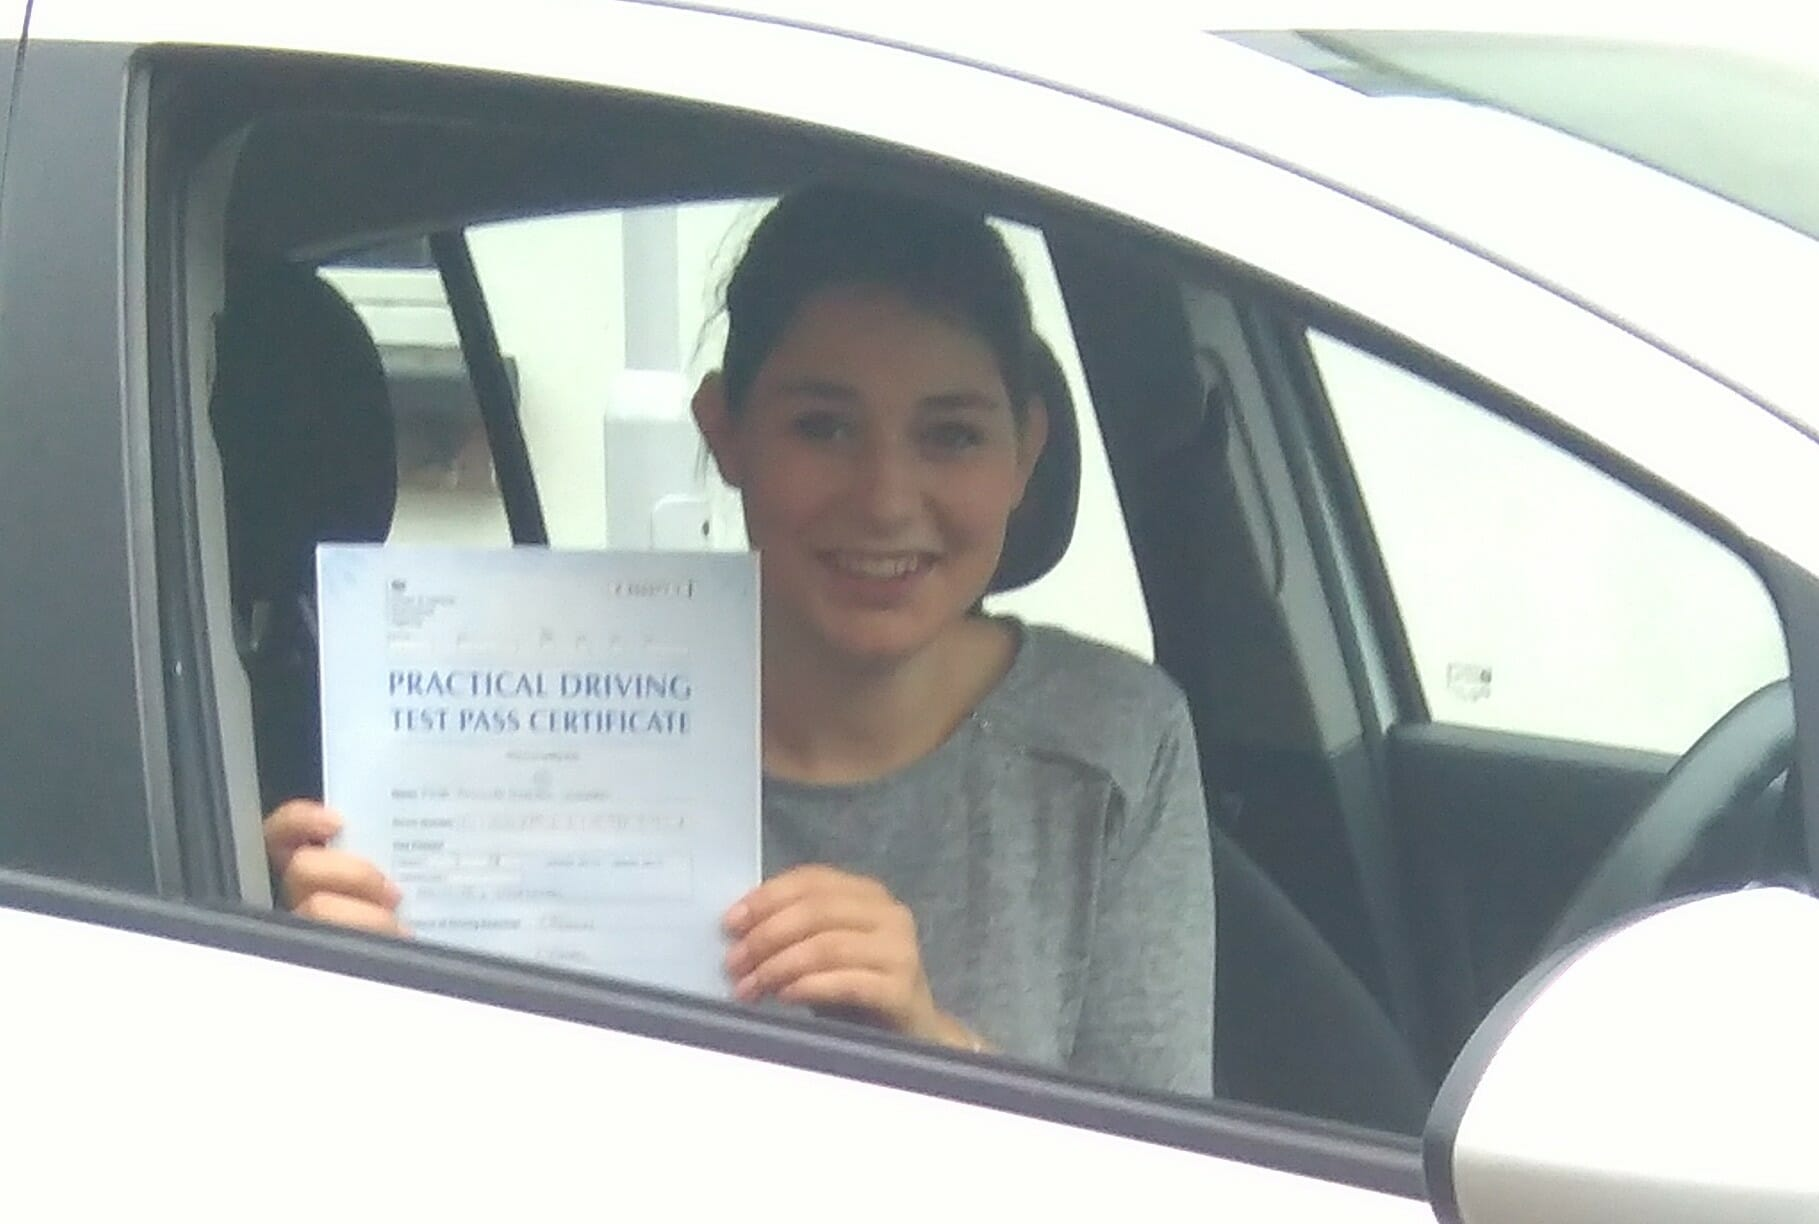 Well Done to Pippa Cicero of Worthing. First time pass!!